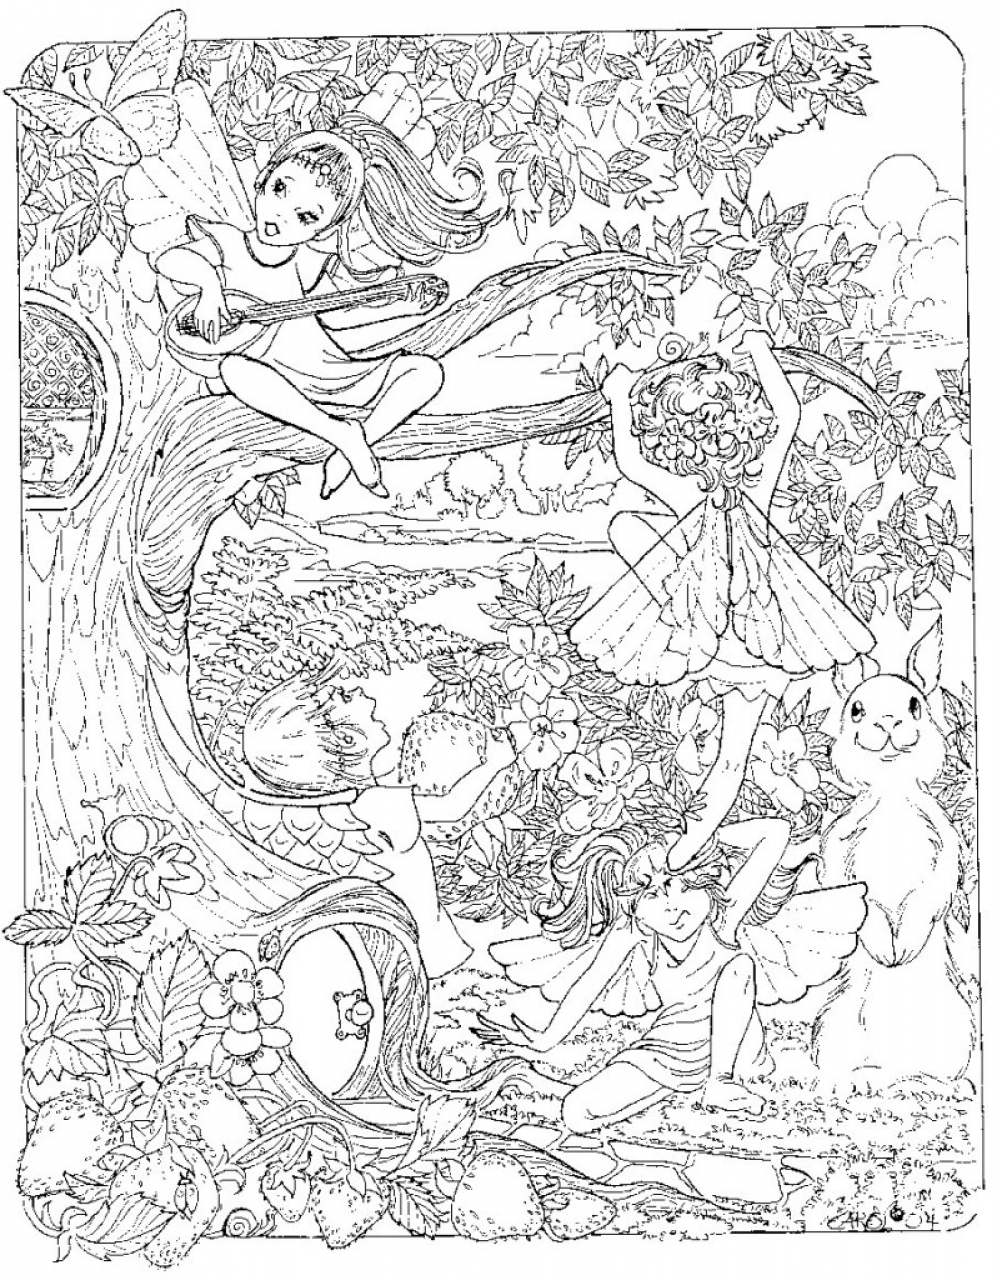 adults color childrens coloring books to color for children adult kids coloring pages coloring adults color childrens books